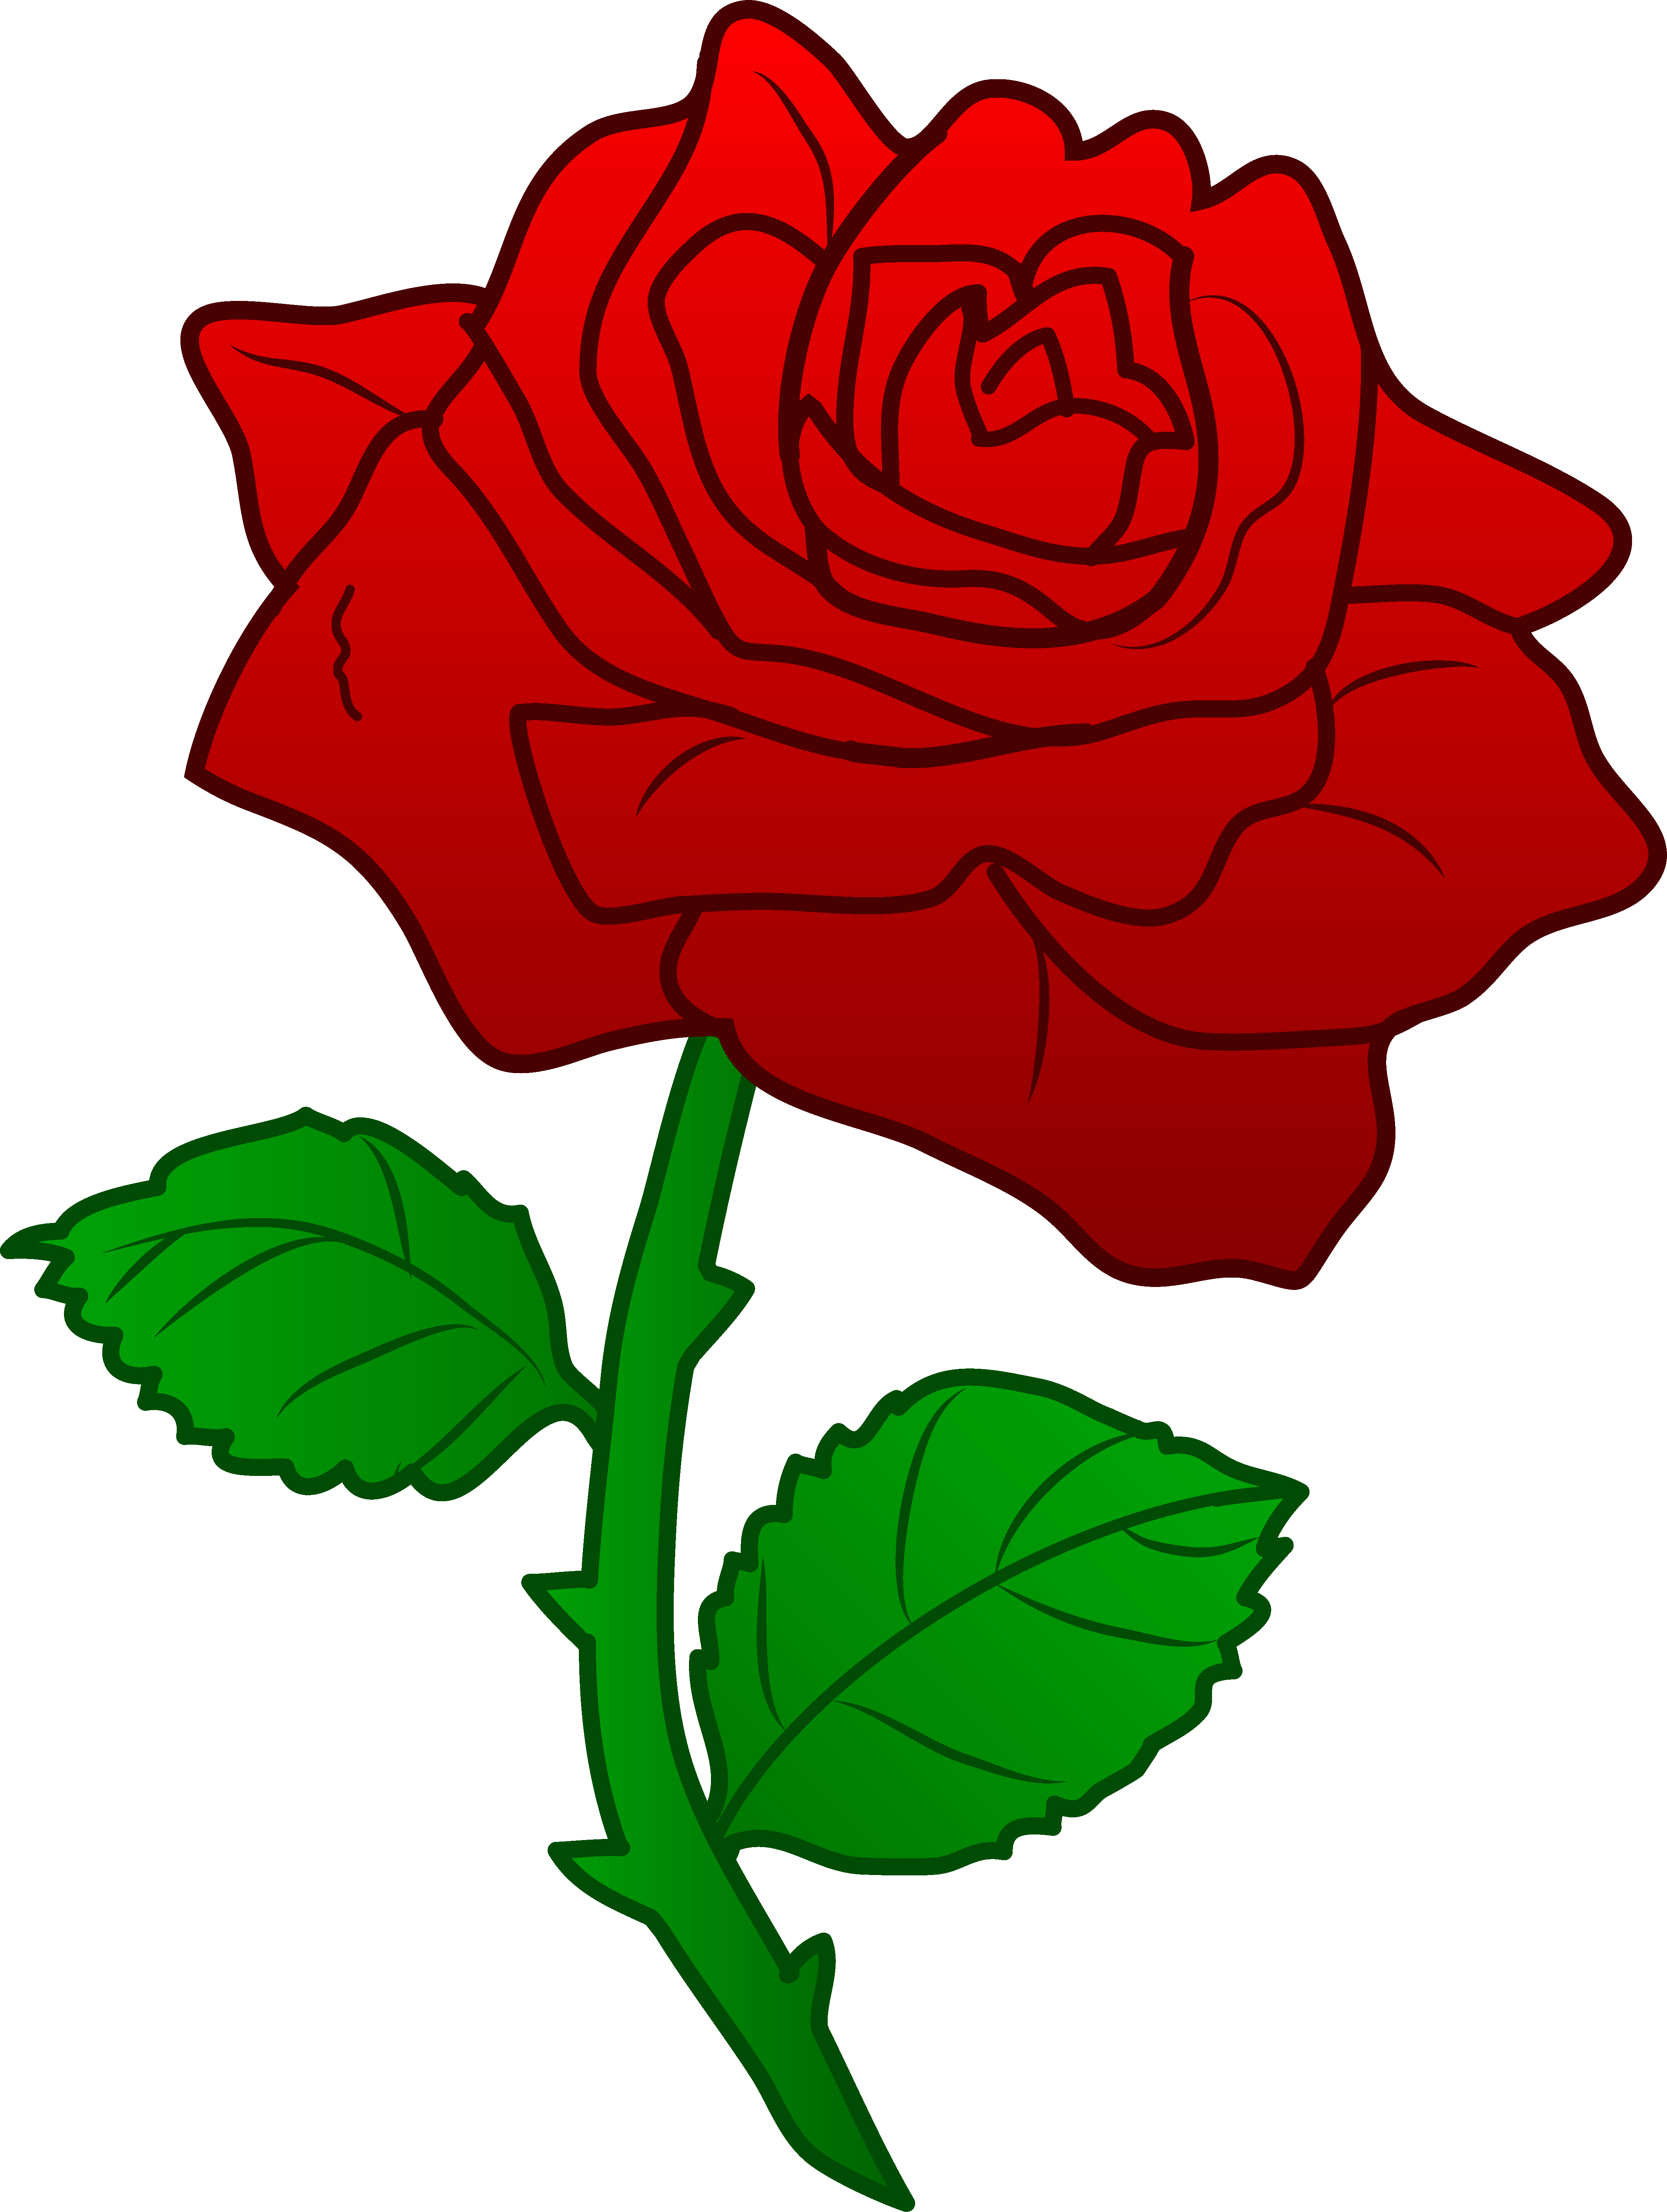 clipart images rose